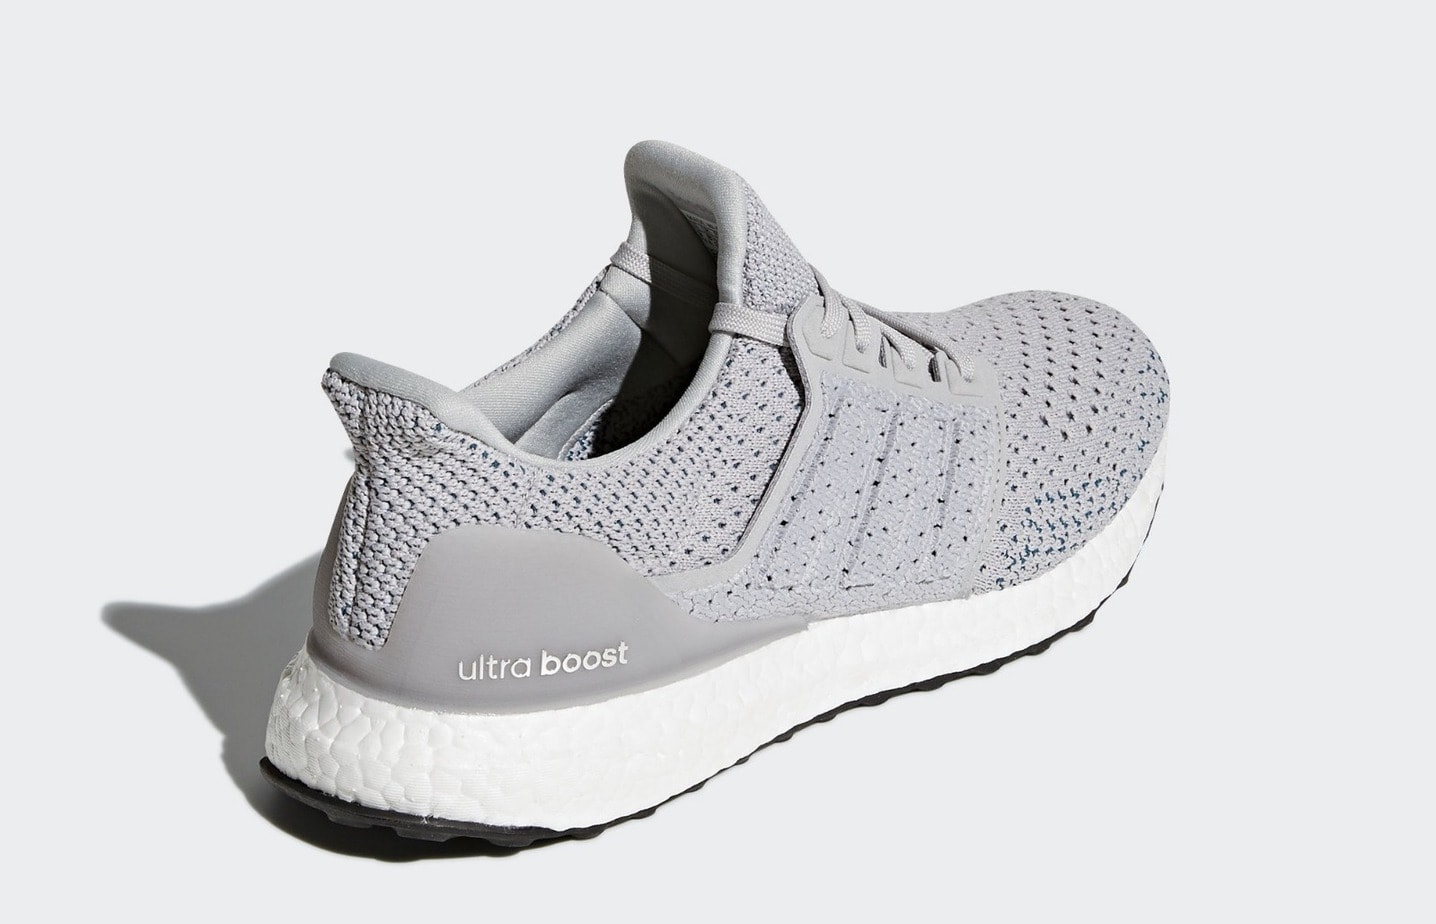 6f9f74bbf good adidas climacool 1 laceless shoes mens white 635ab d02b6  real see  more adidas ultra boost release dates 663eb 95bb2